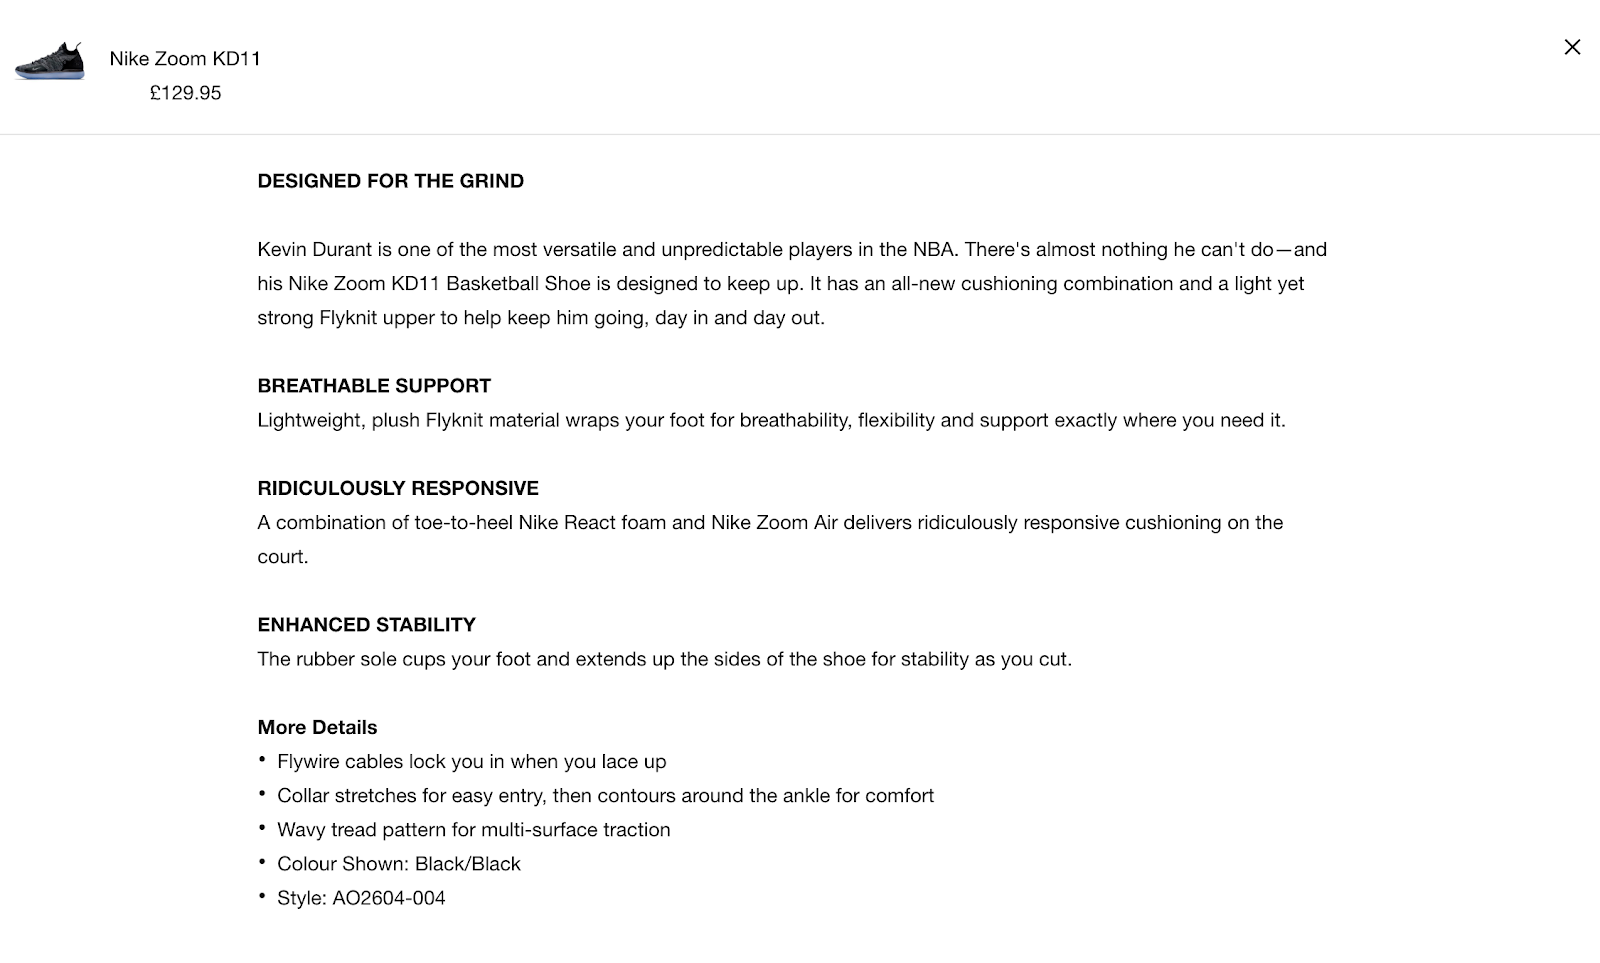 Screenshot showing product description for Nike shoes